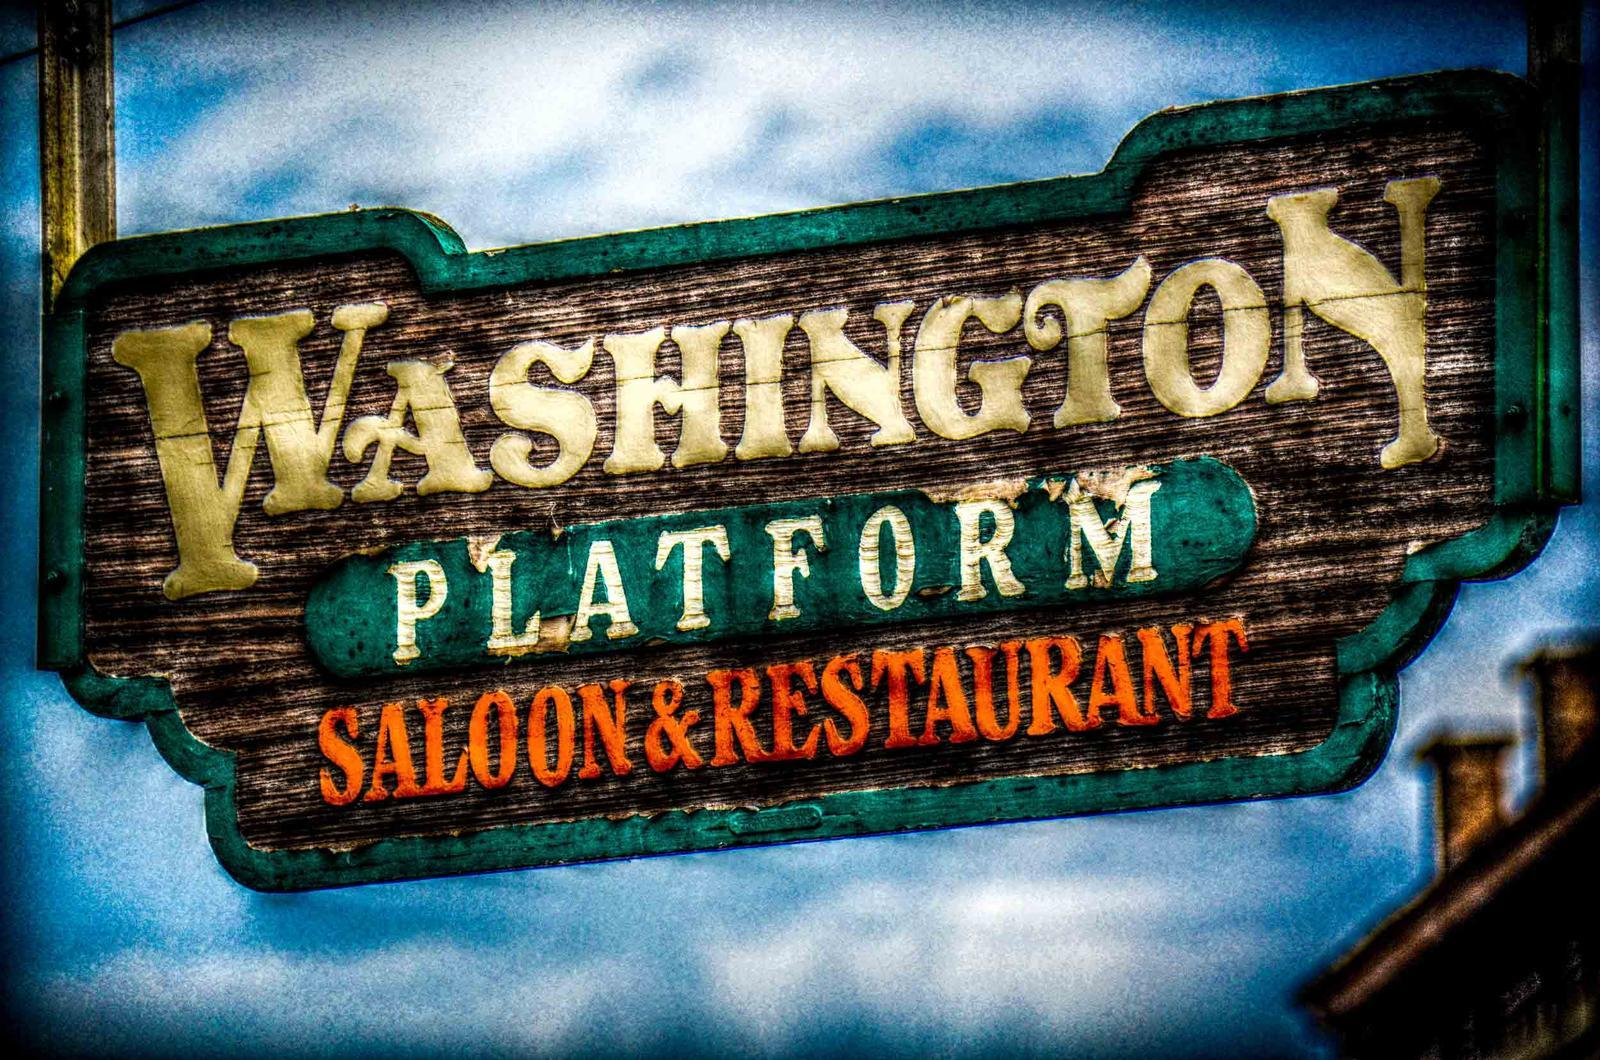 Experience Cincinnati's Best Live Jazz at Washington Platform